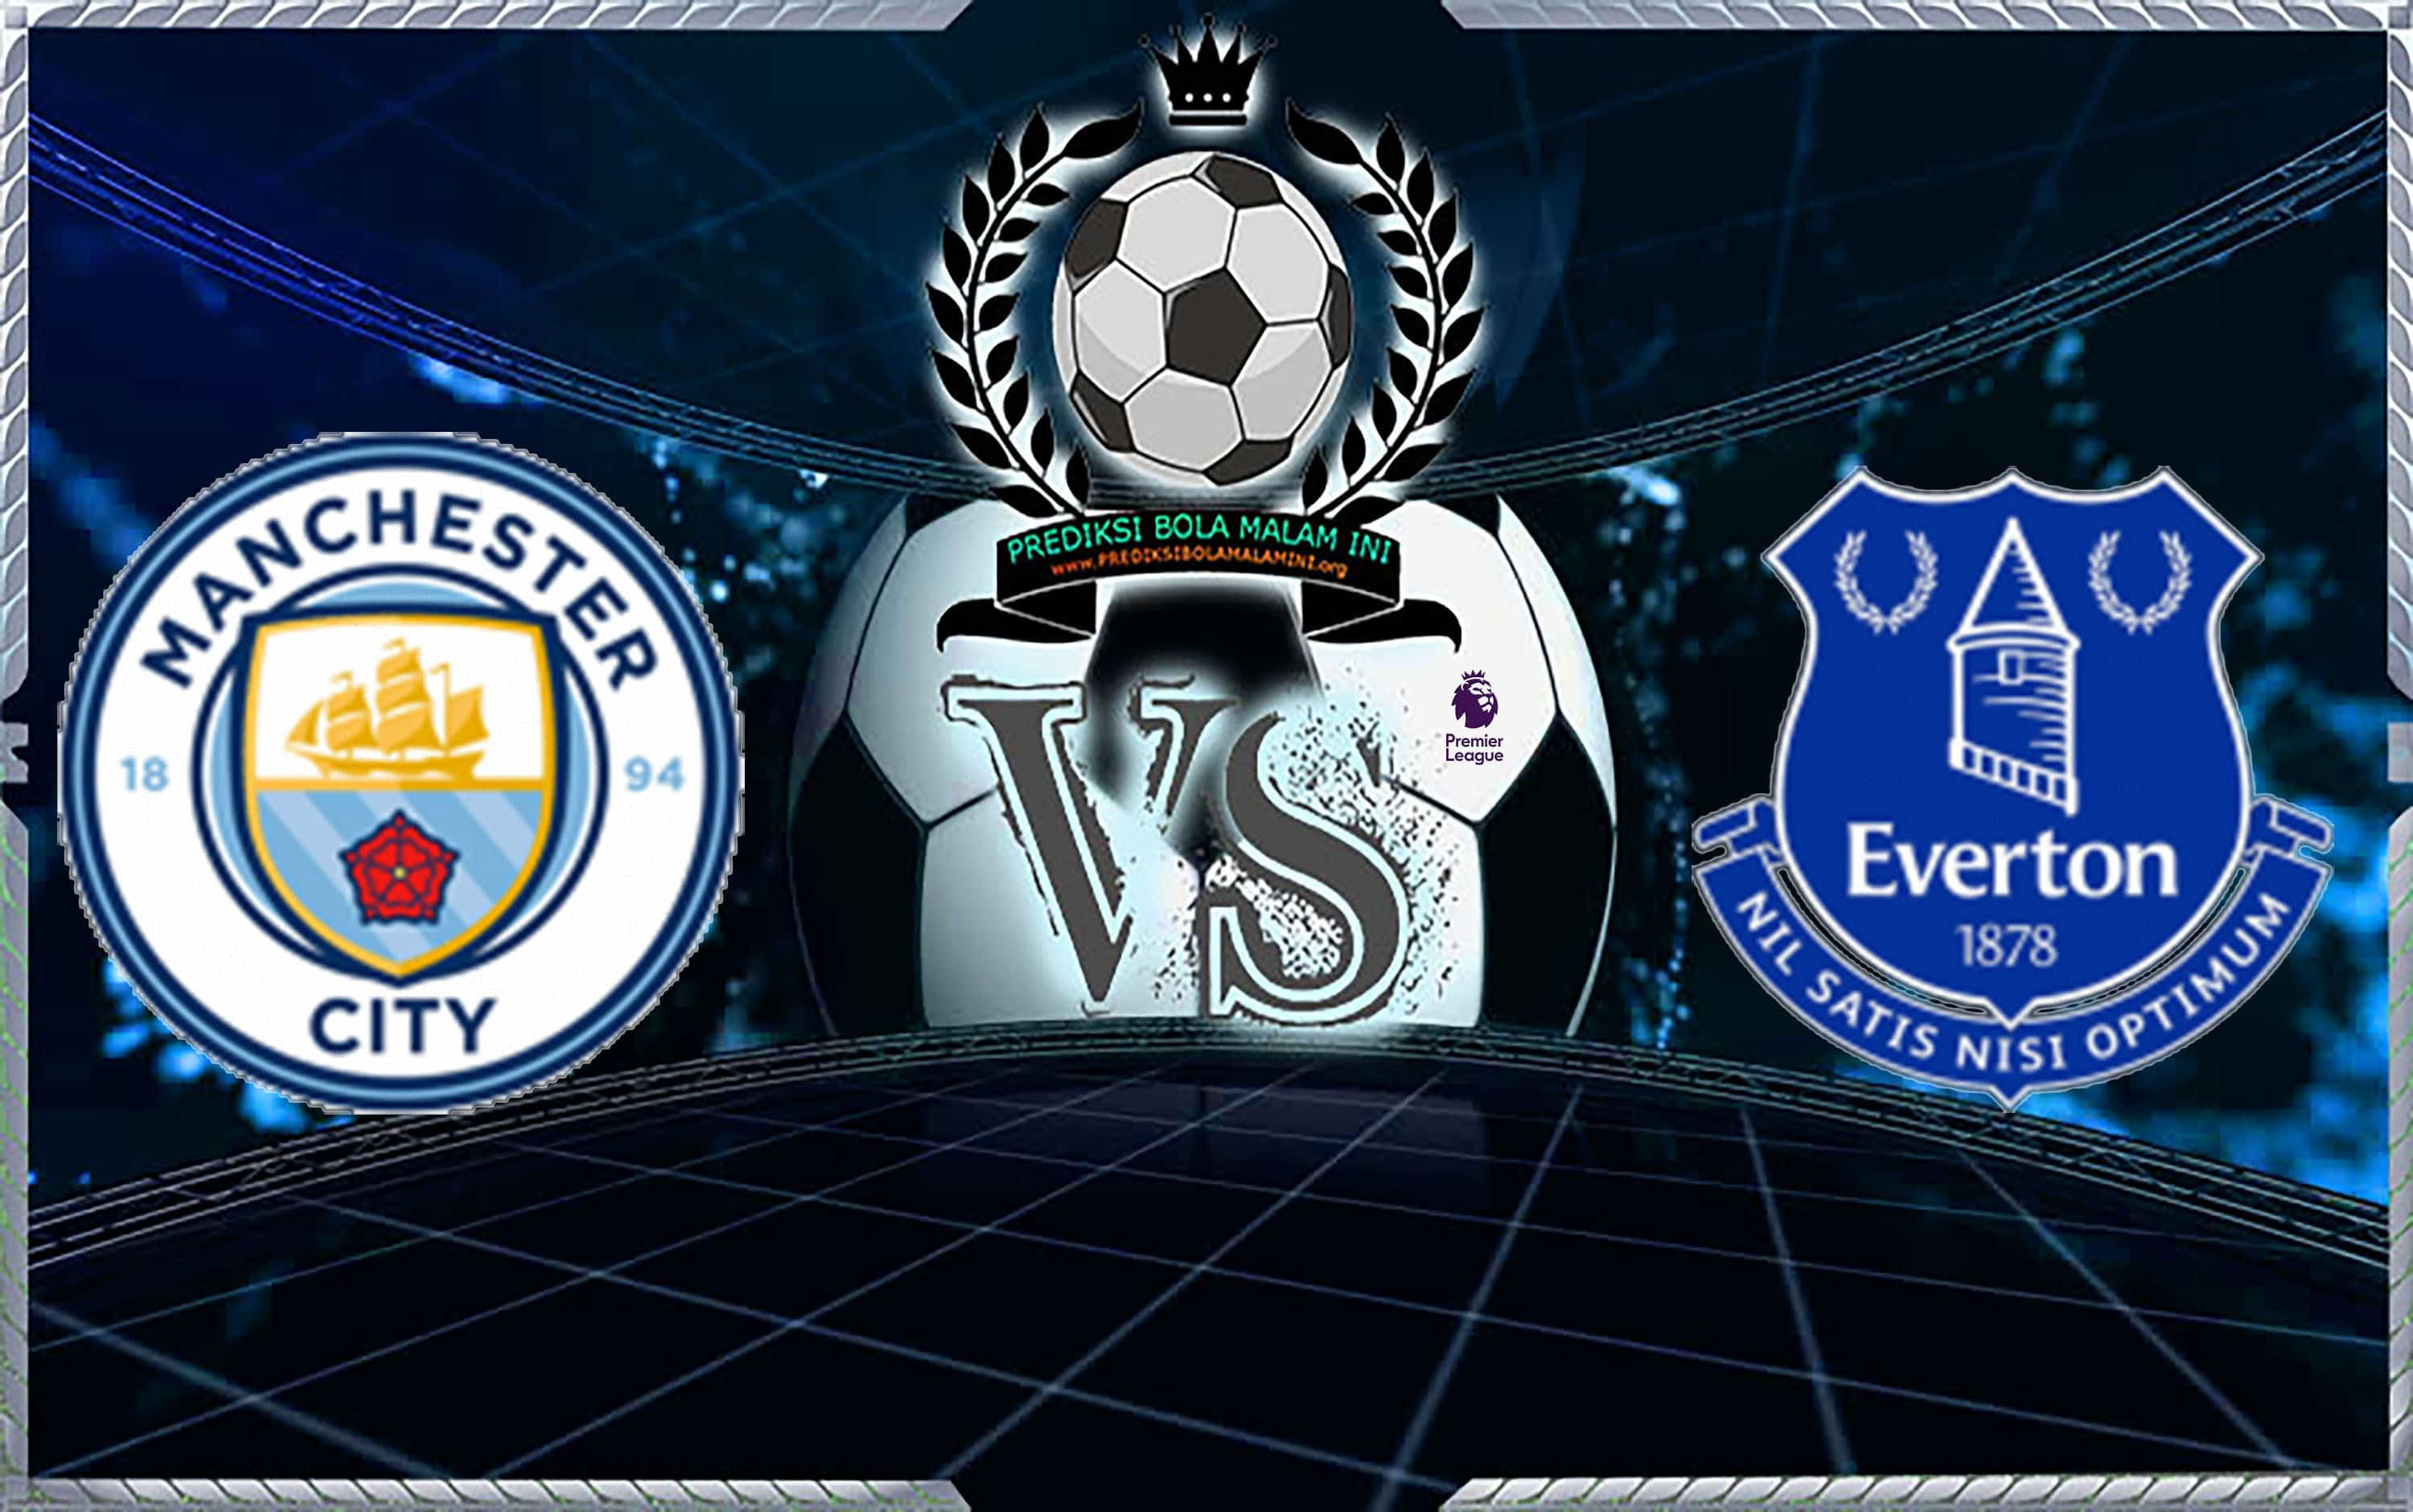 Predicks Skor Manchester City Vs Everton 15 Desember 2018 [macarere9002] Bicks Manchester United Manchester City Vs Everton Predicks Manchester City Vs Everton Predicks Skor Manchester City Vs Everton Pertandingan Predik Manchester City Vs Everton , Hasil Skor Manchester City Vs Everton Manchester City Vs Everton </strong></span>  &#8211; yang akan di adakan pada tanggal 15 Desember 2018 Pada Pukul 19: 30 WIB Stadion Di Etihad (Manchester) </p> <p><a href=